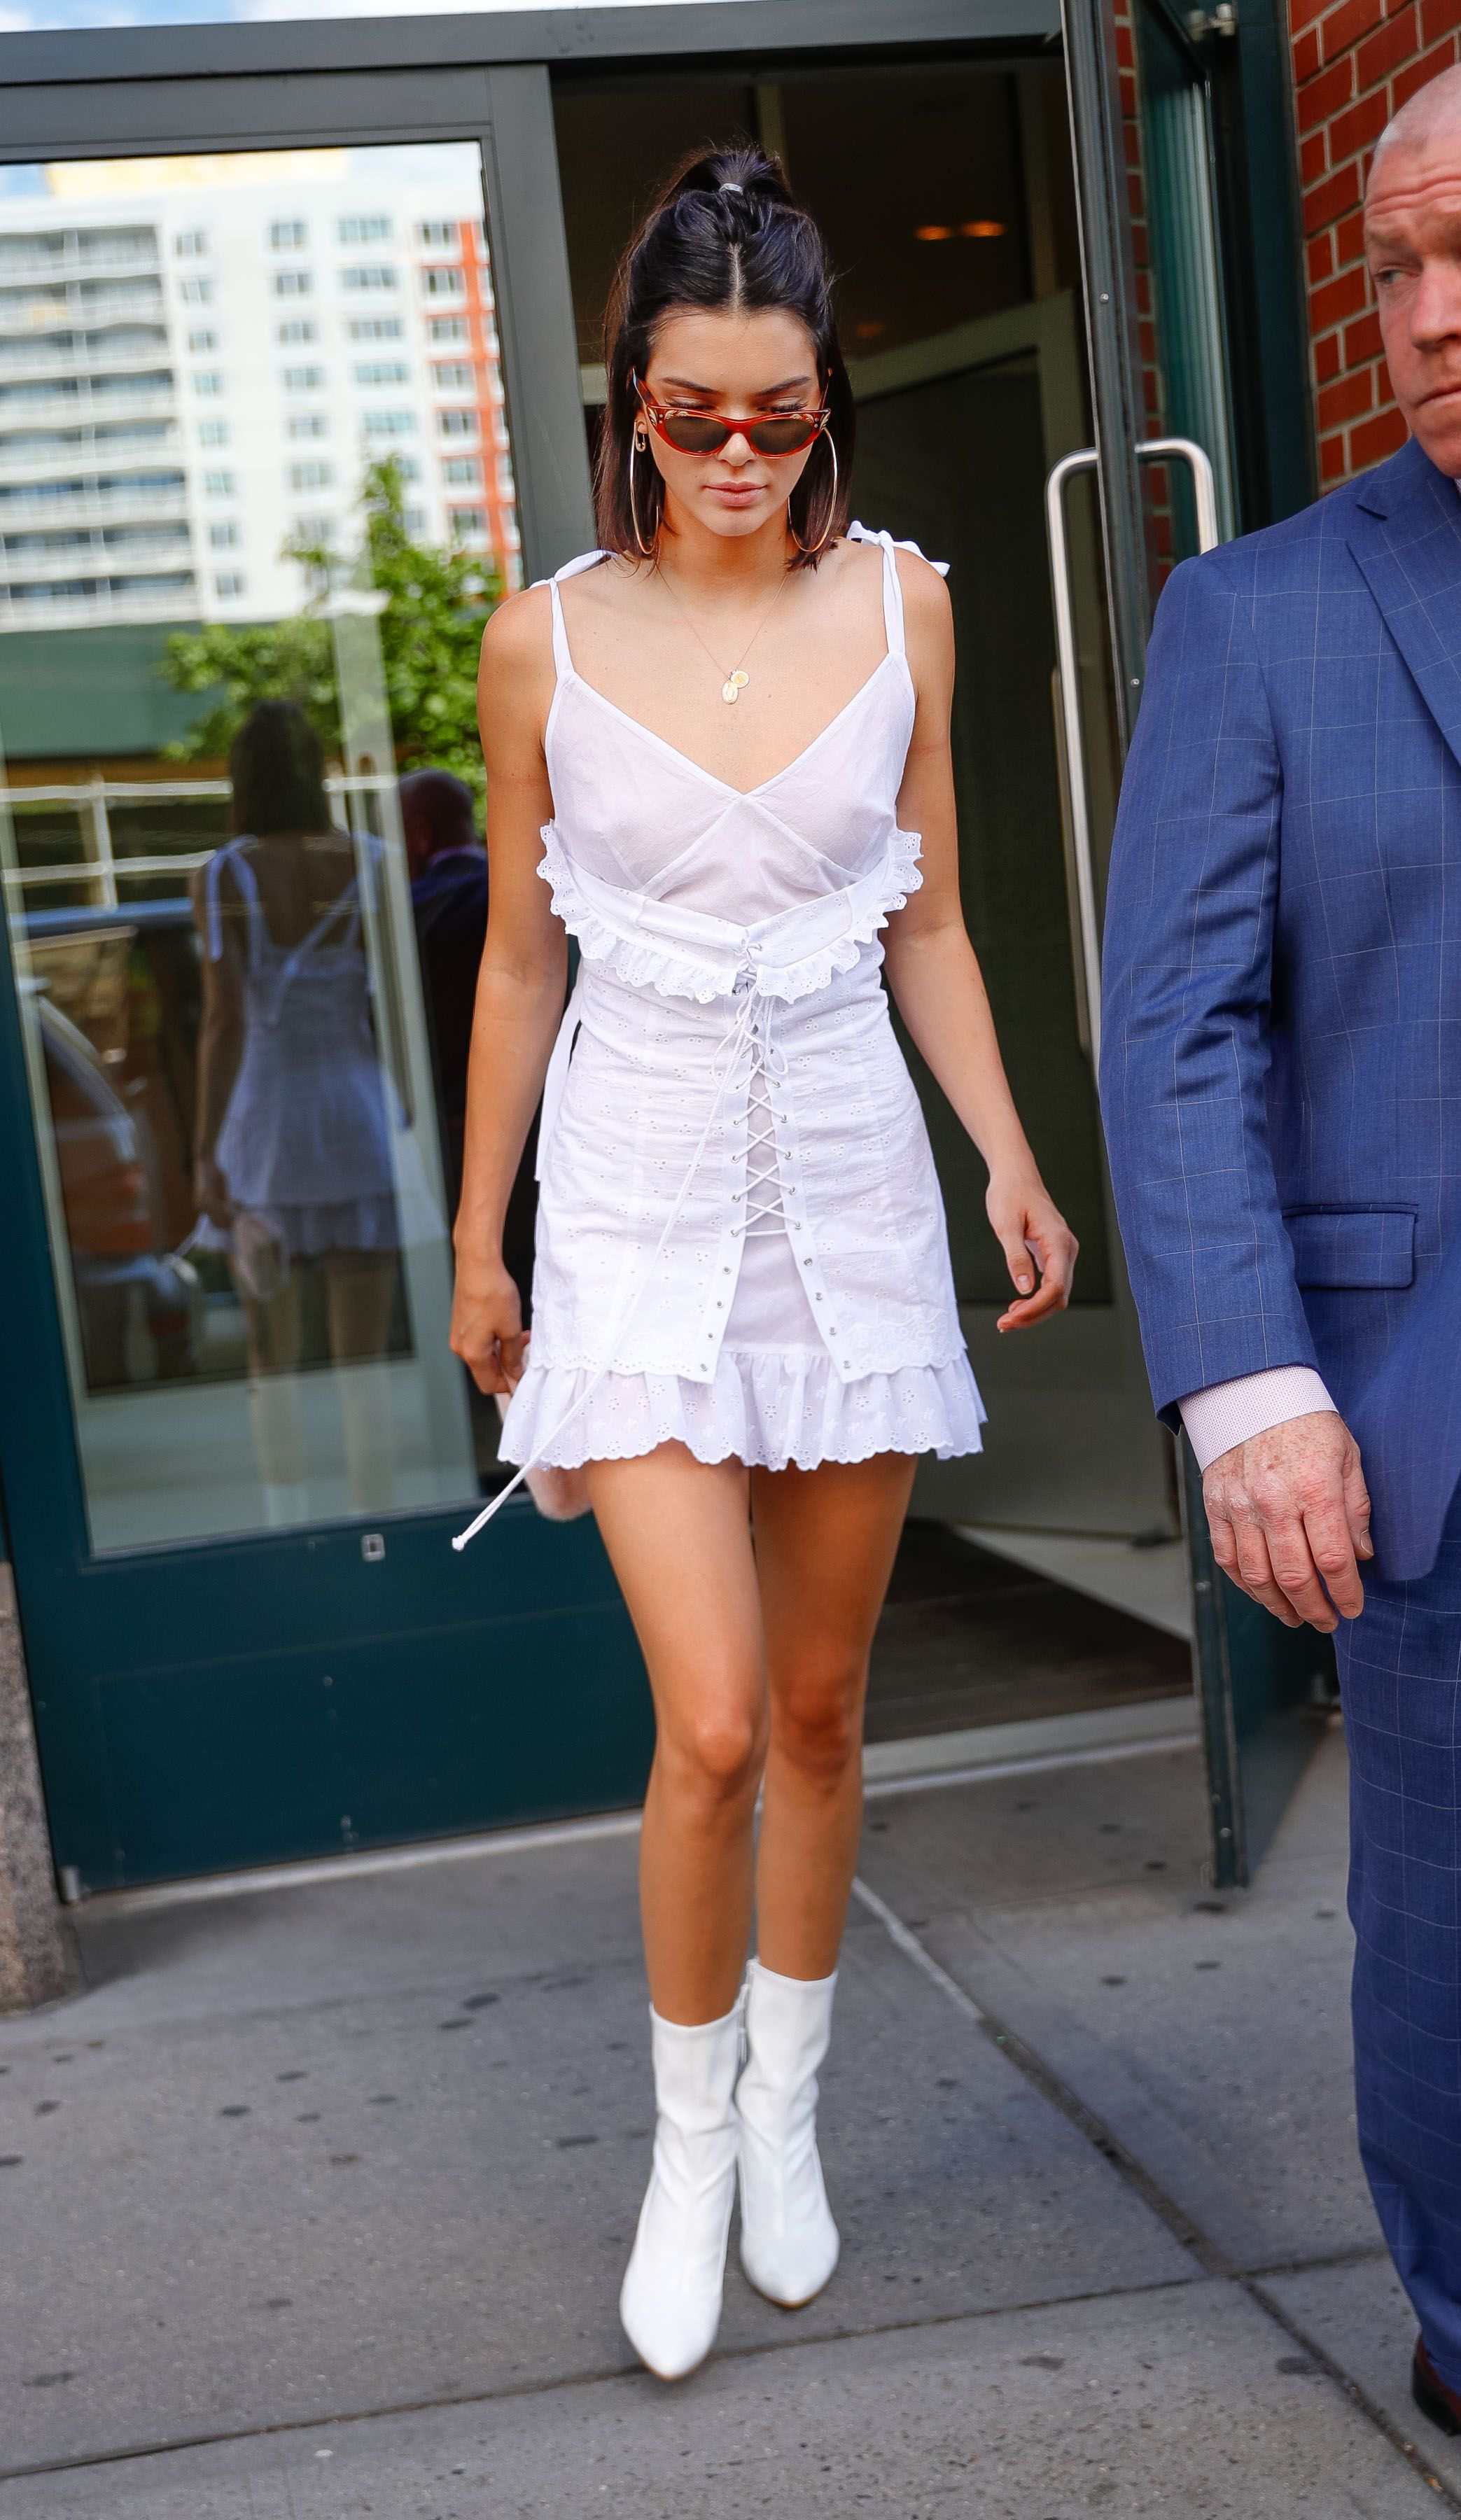 2857a70f48c Kendall Jenner Street Style - Kendall Jenner s Best Fashion Looks